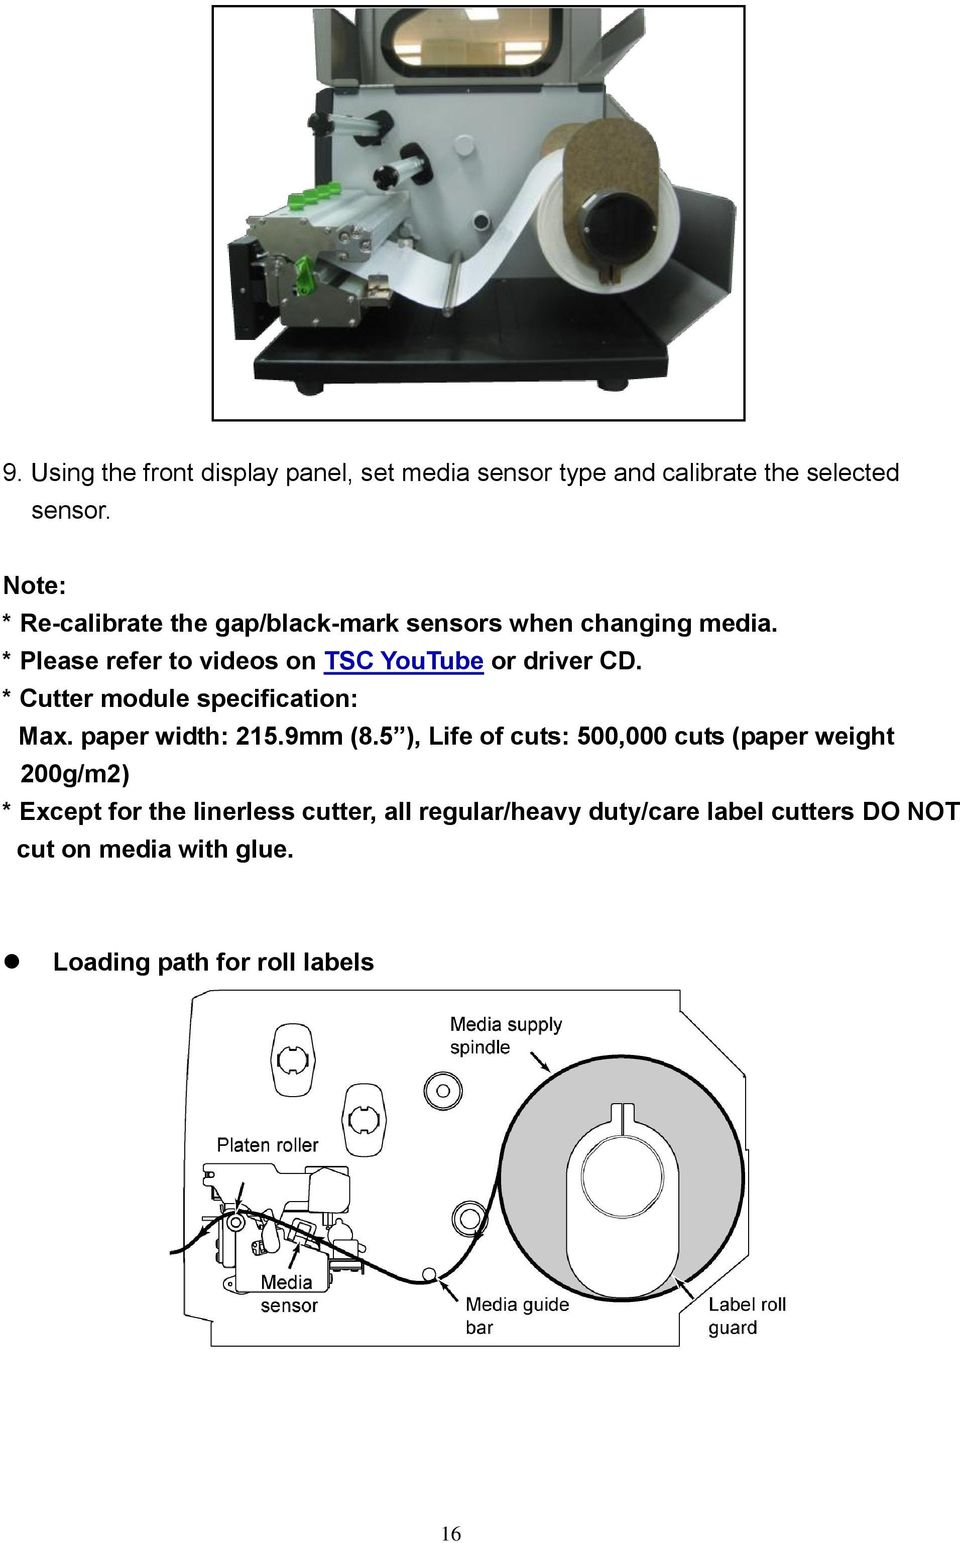 * Please refer to videos on TSC YouTube or driver CD. * Cutter module specification: Max. paper width: 215.9mm (8.